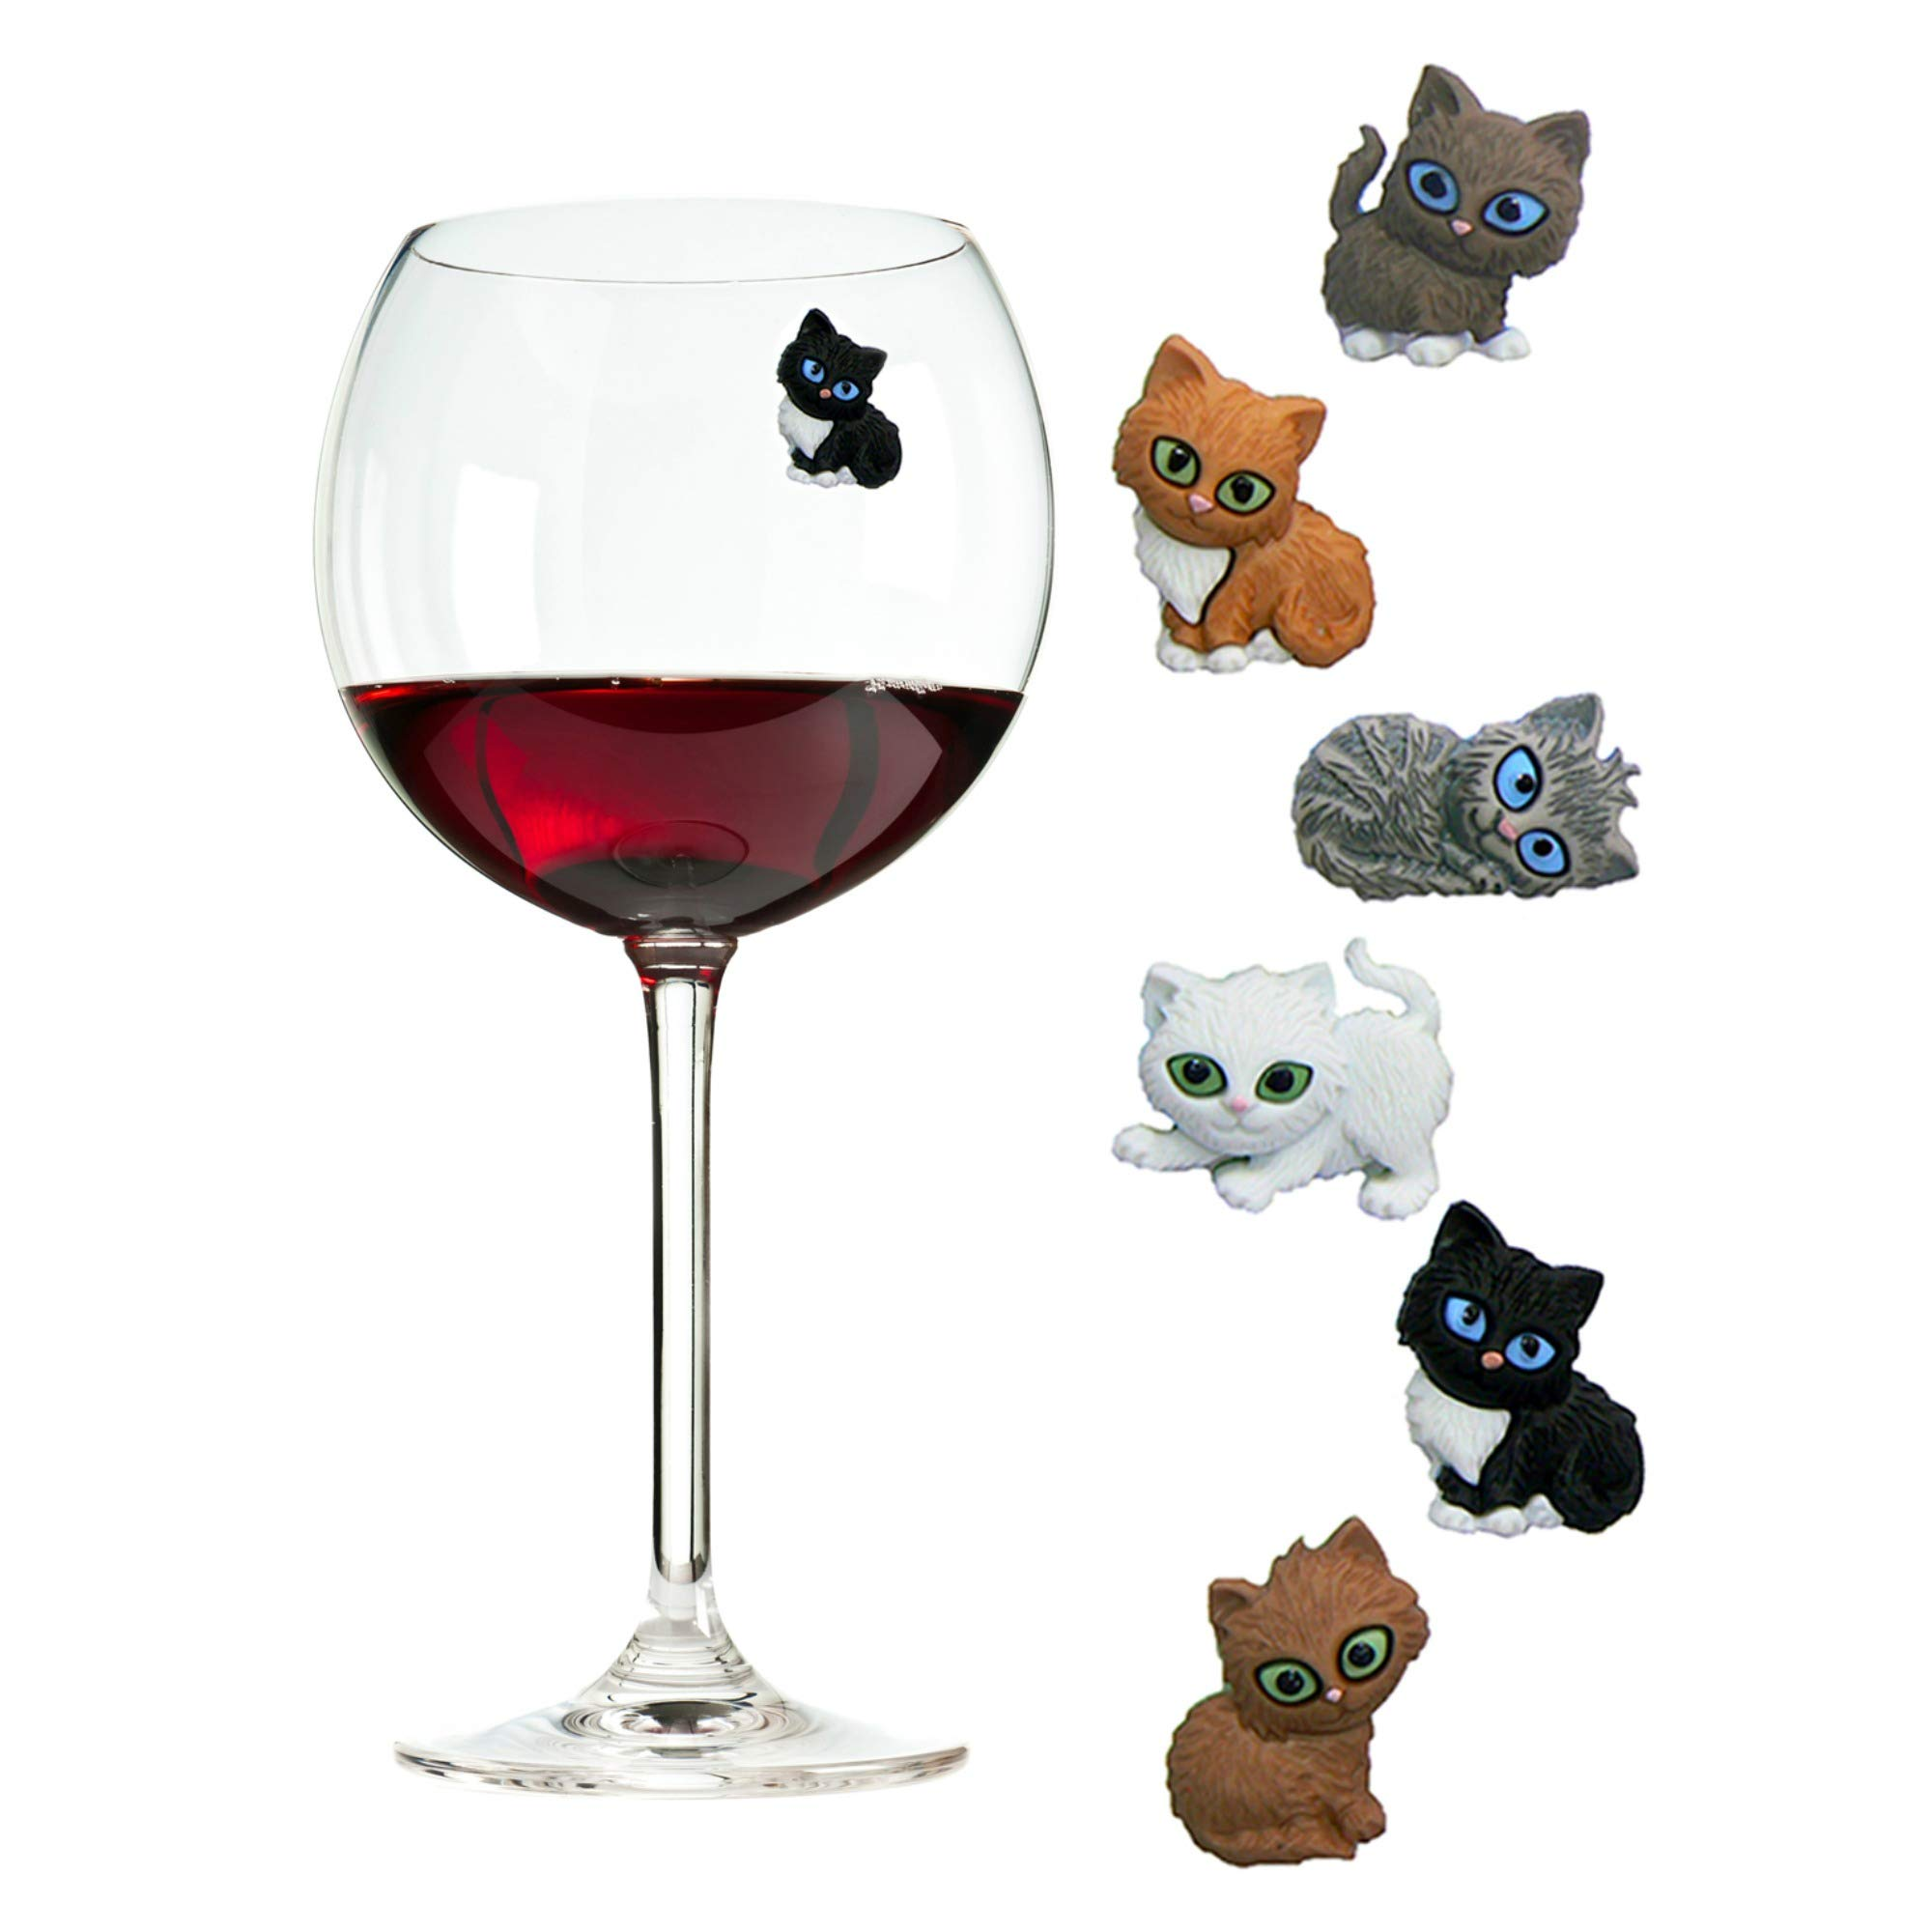 Simply Charmed Cat Wine Charms or Drink Glass Markers - Magnetic - Great Birthday or Hostess Gift for Cat Lovers - Set of 6 Cute Kitty Glass Identifiers by Simply Charmed